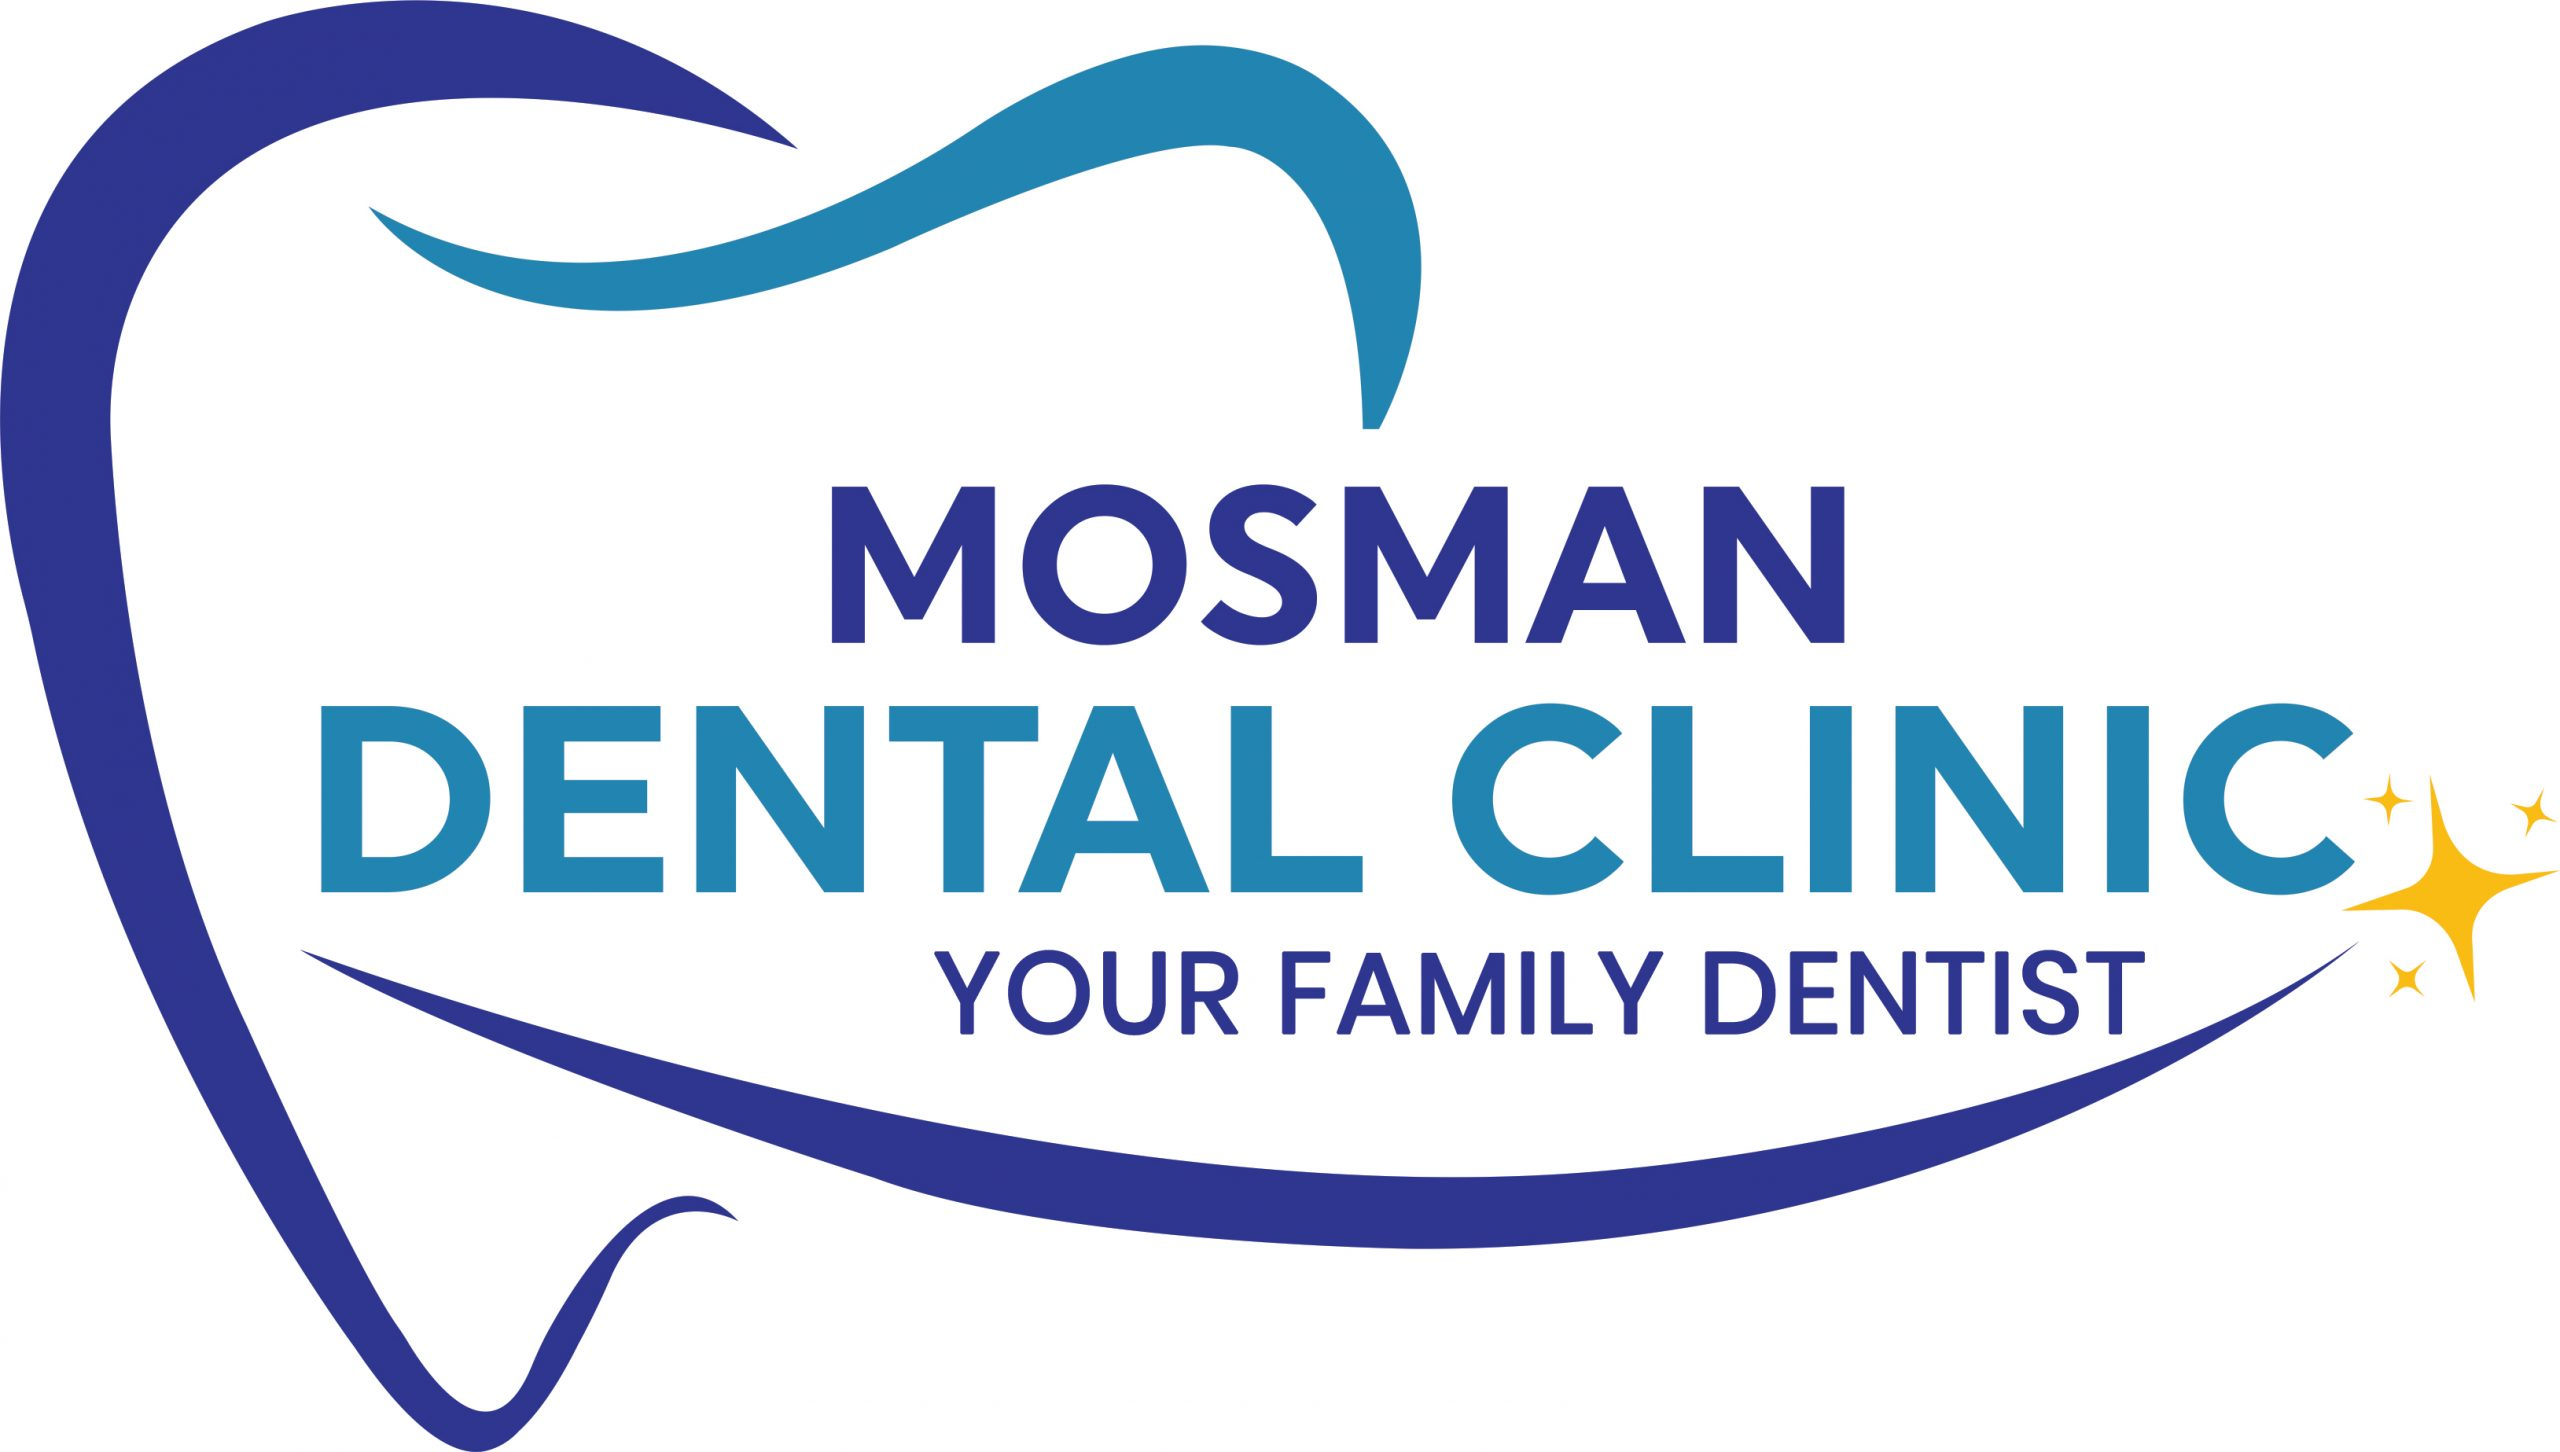 Mosman Dental Clinic